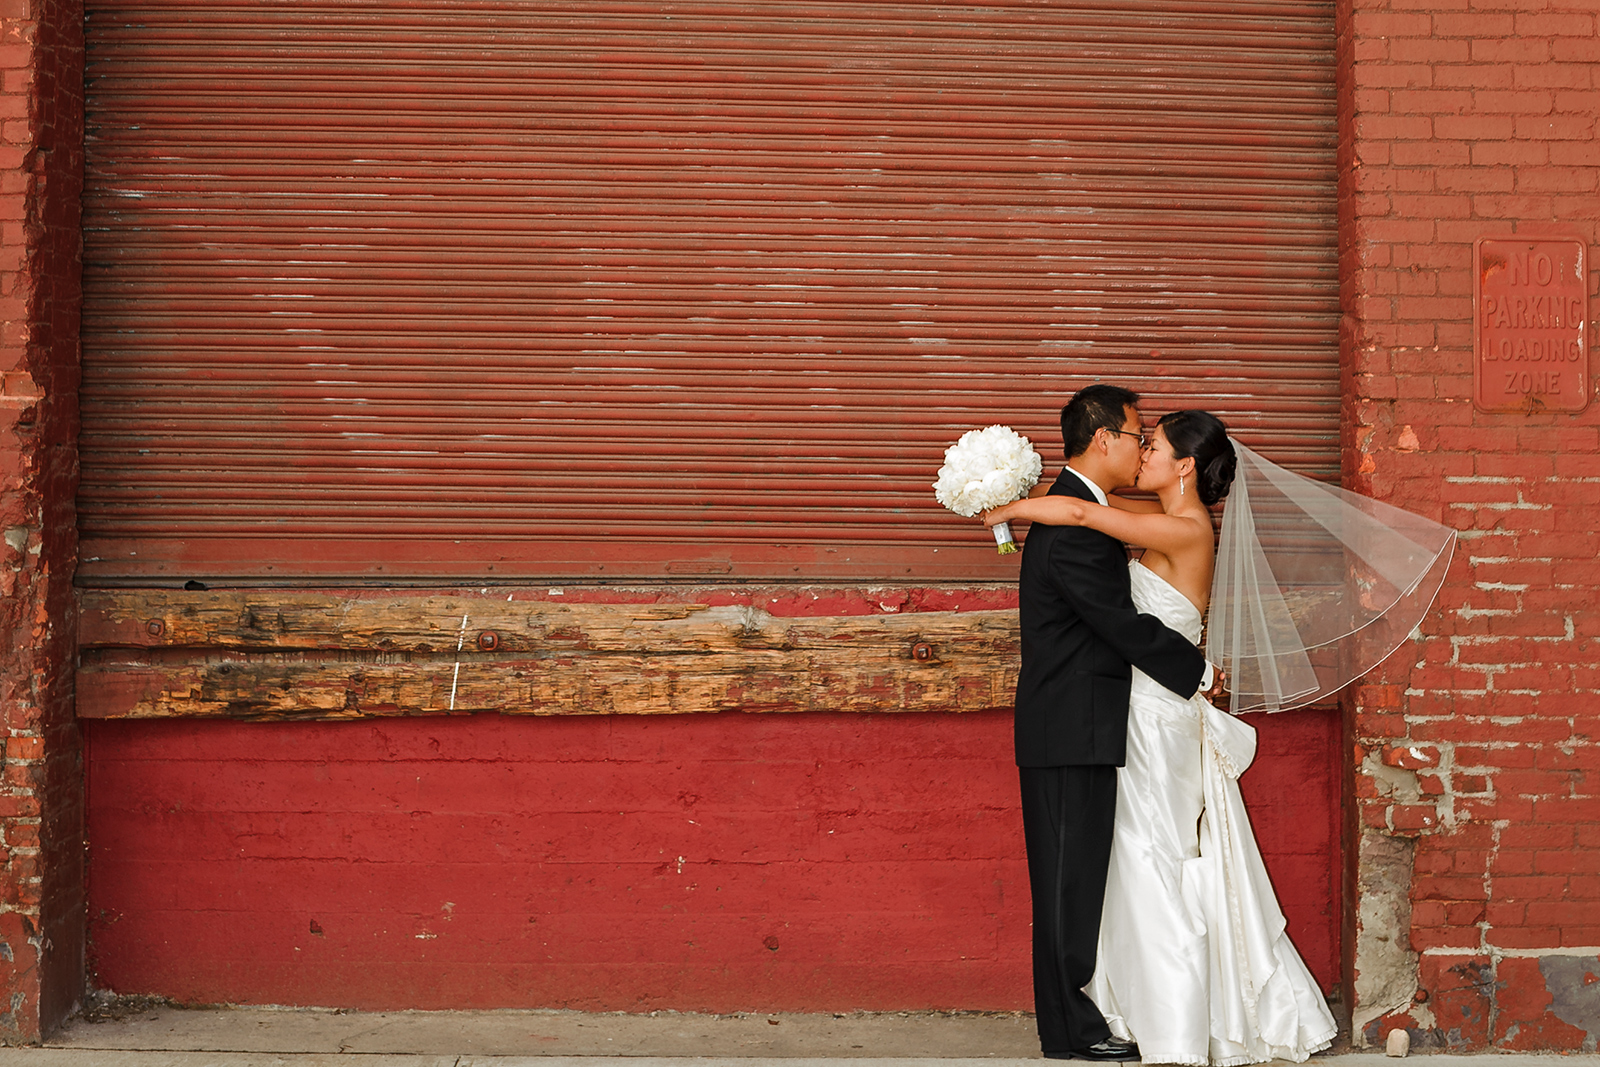 Dumbo wedding brick wall kiss